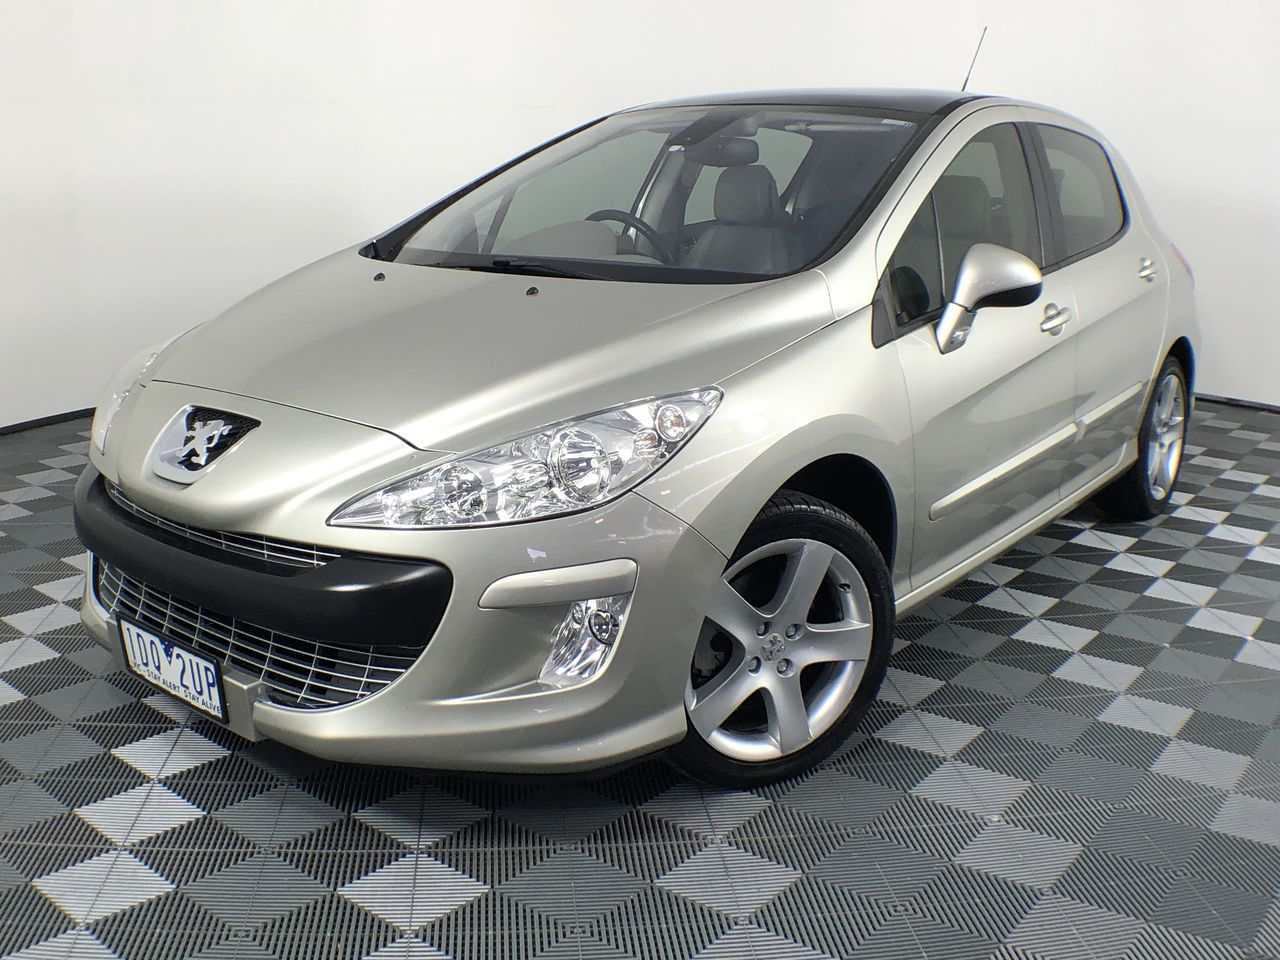 2008 Peugeot 308 XTE HDi Turbo Diesel Automatic Hatchback